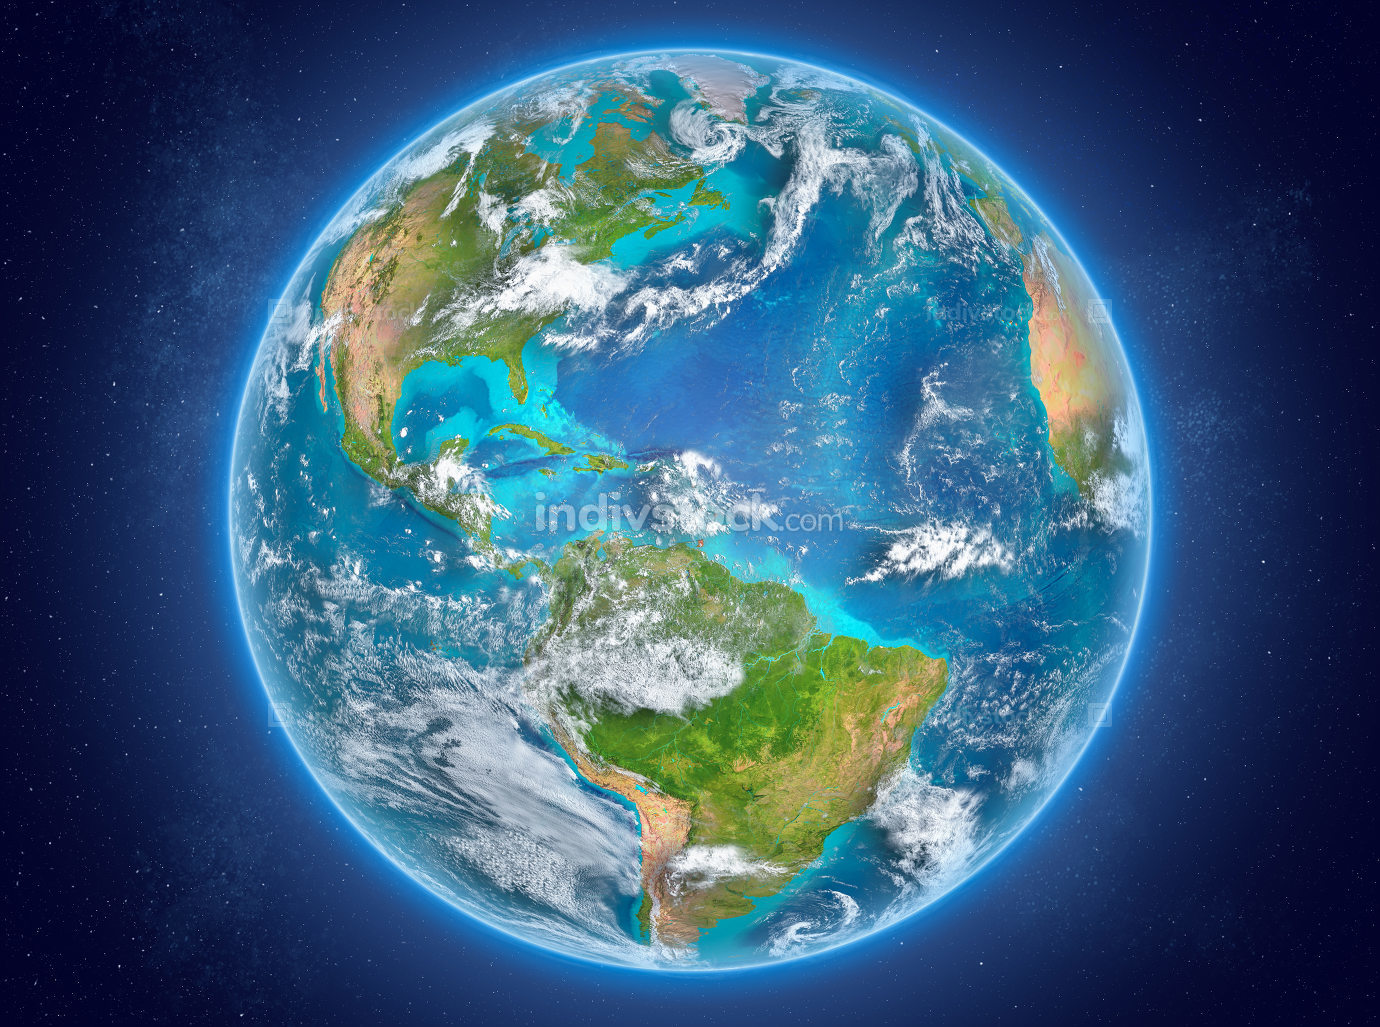 Caribbean on planet Earth in space